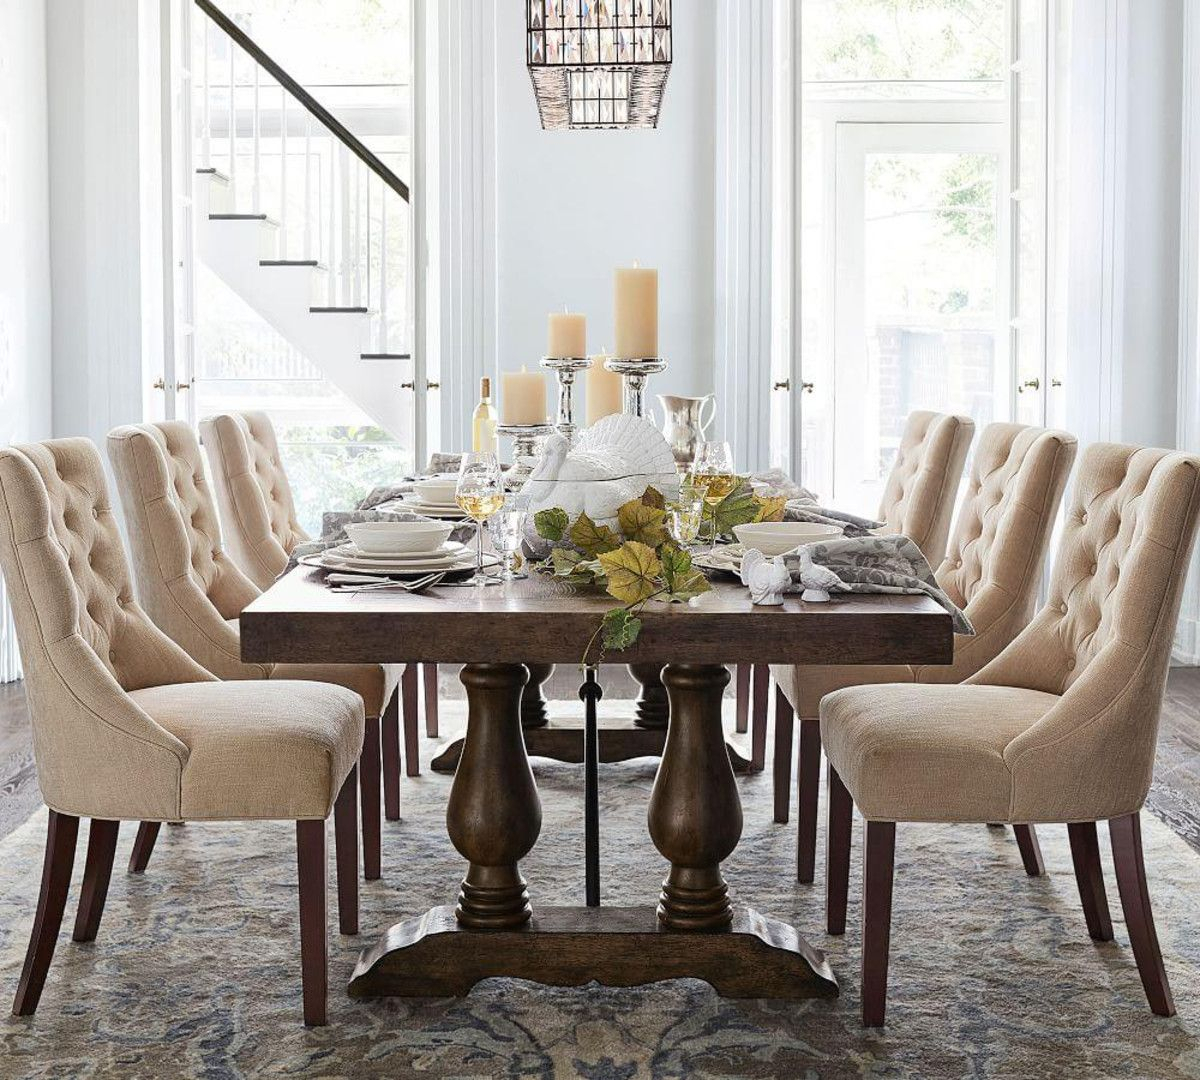 Lorraine Extending Dining Table In 2019 | Woodworks Within Most Current Hewn Oak Lorraine Extending Dining Tables (Image 12 of 25)